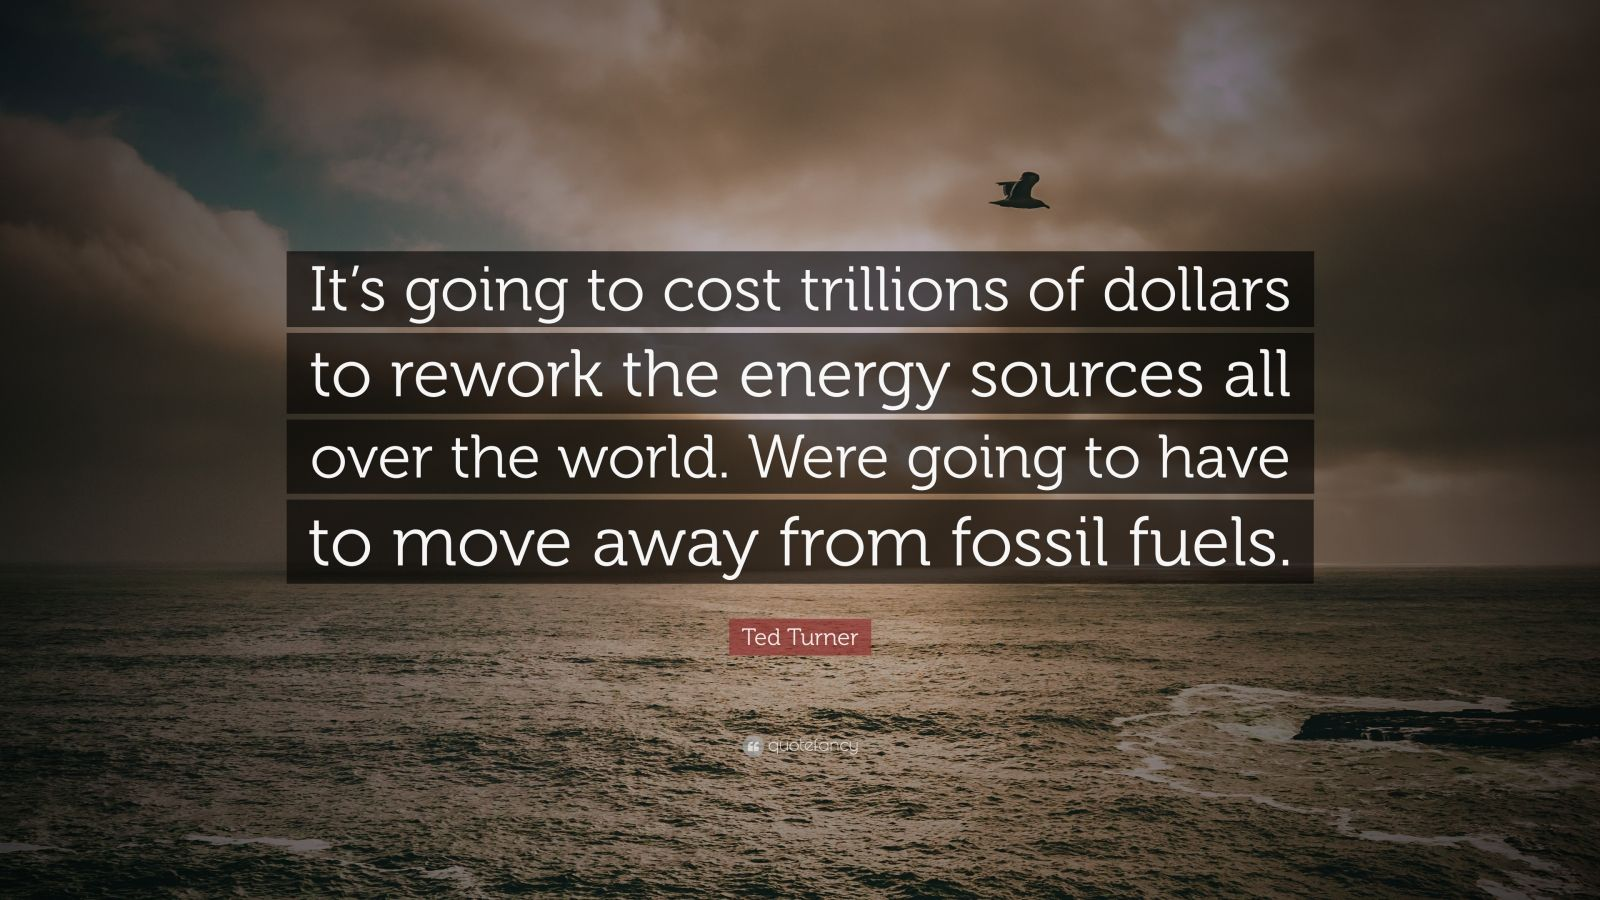 """Ted Turner Quote: """"It's going to cost trillions of dollars to rework the energy sources all over the world. Were going to have to move away from fossil fuels."""""""